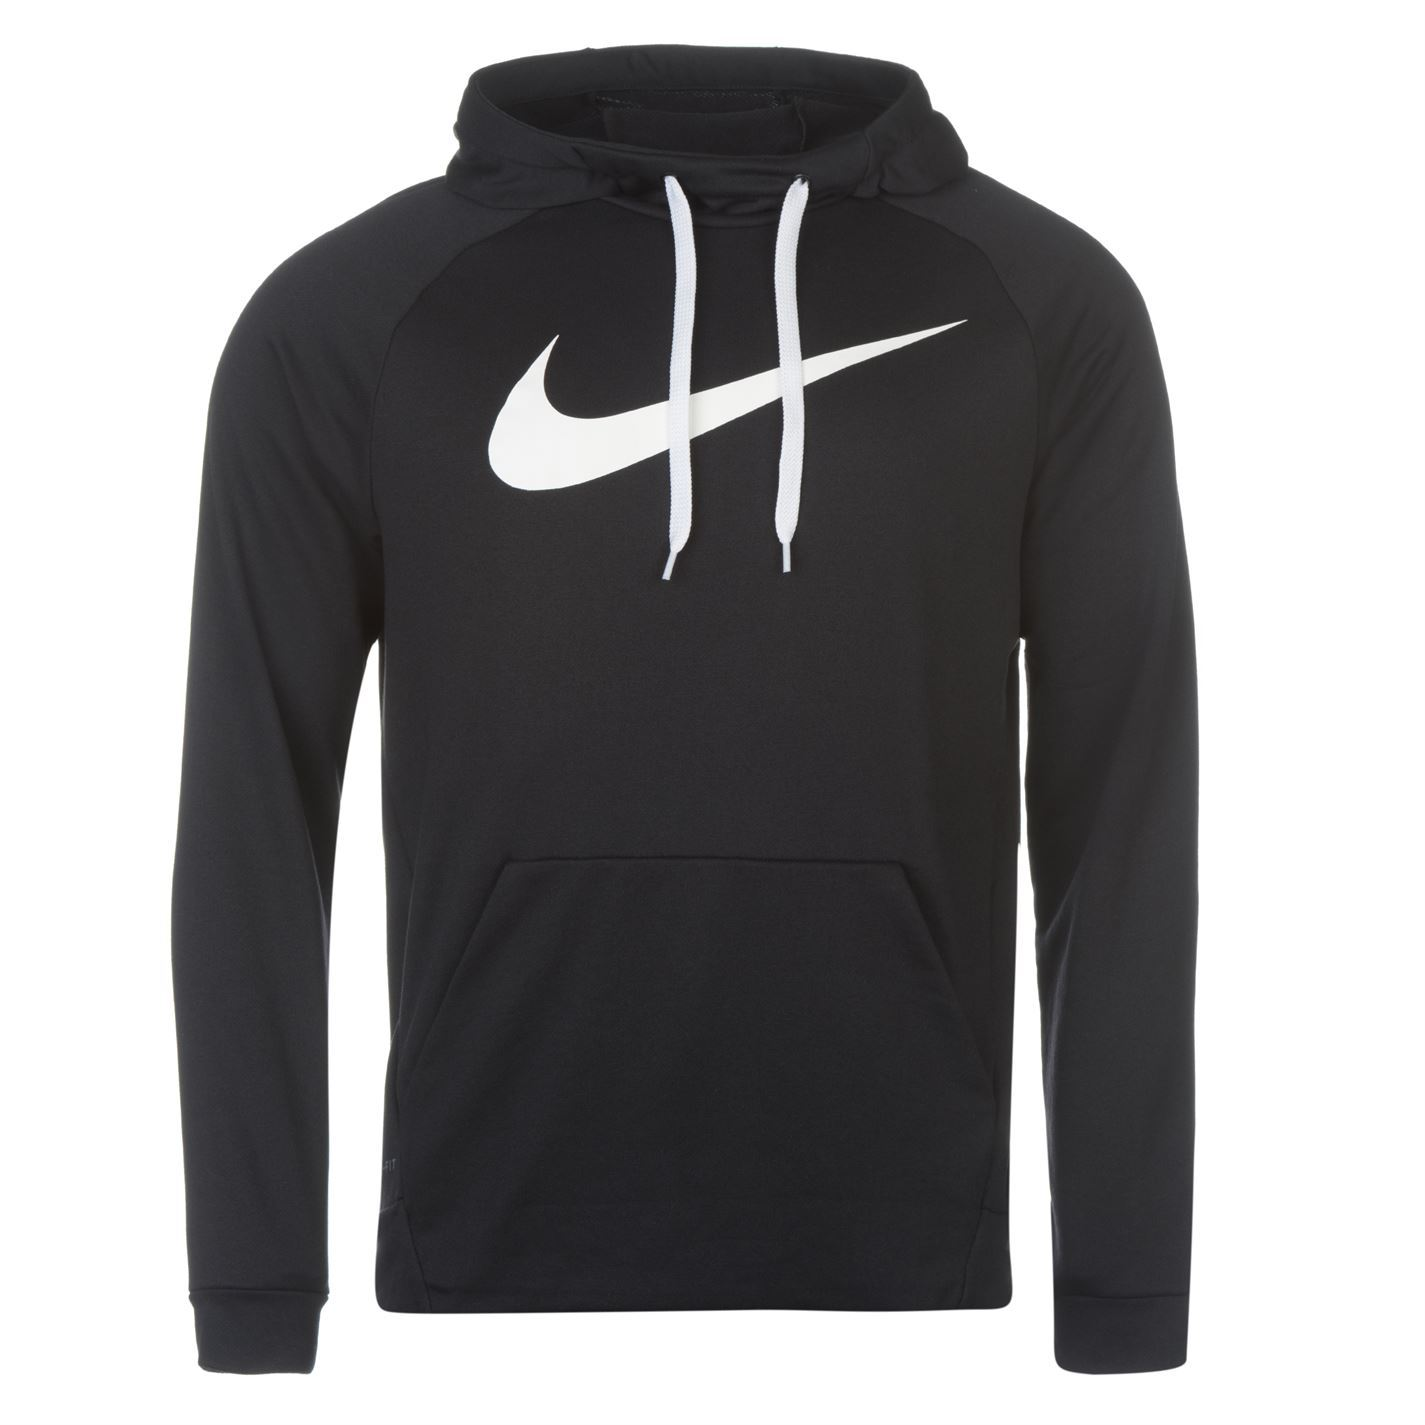 451af285fa Details about Nike Dri-Fit Swoosh Pullover Hoody Mens OTH Hoodie Sweatshirt  Sweater Hooded Top